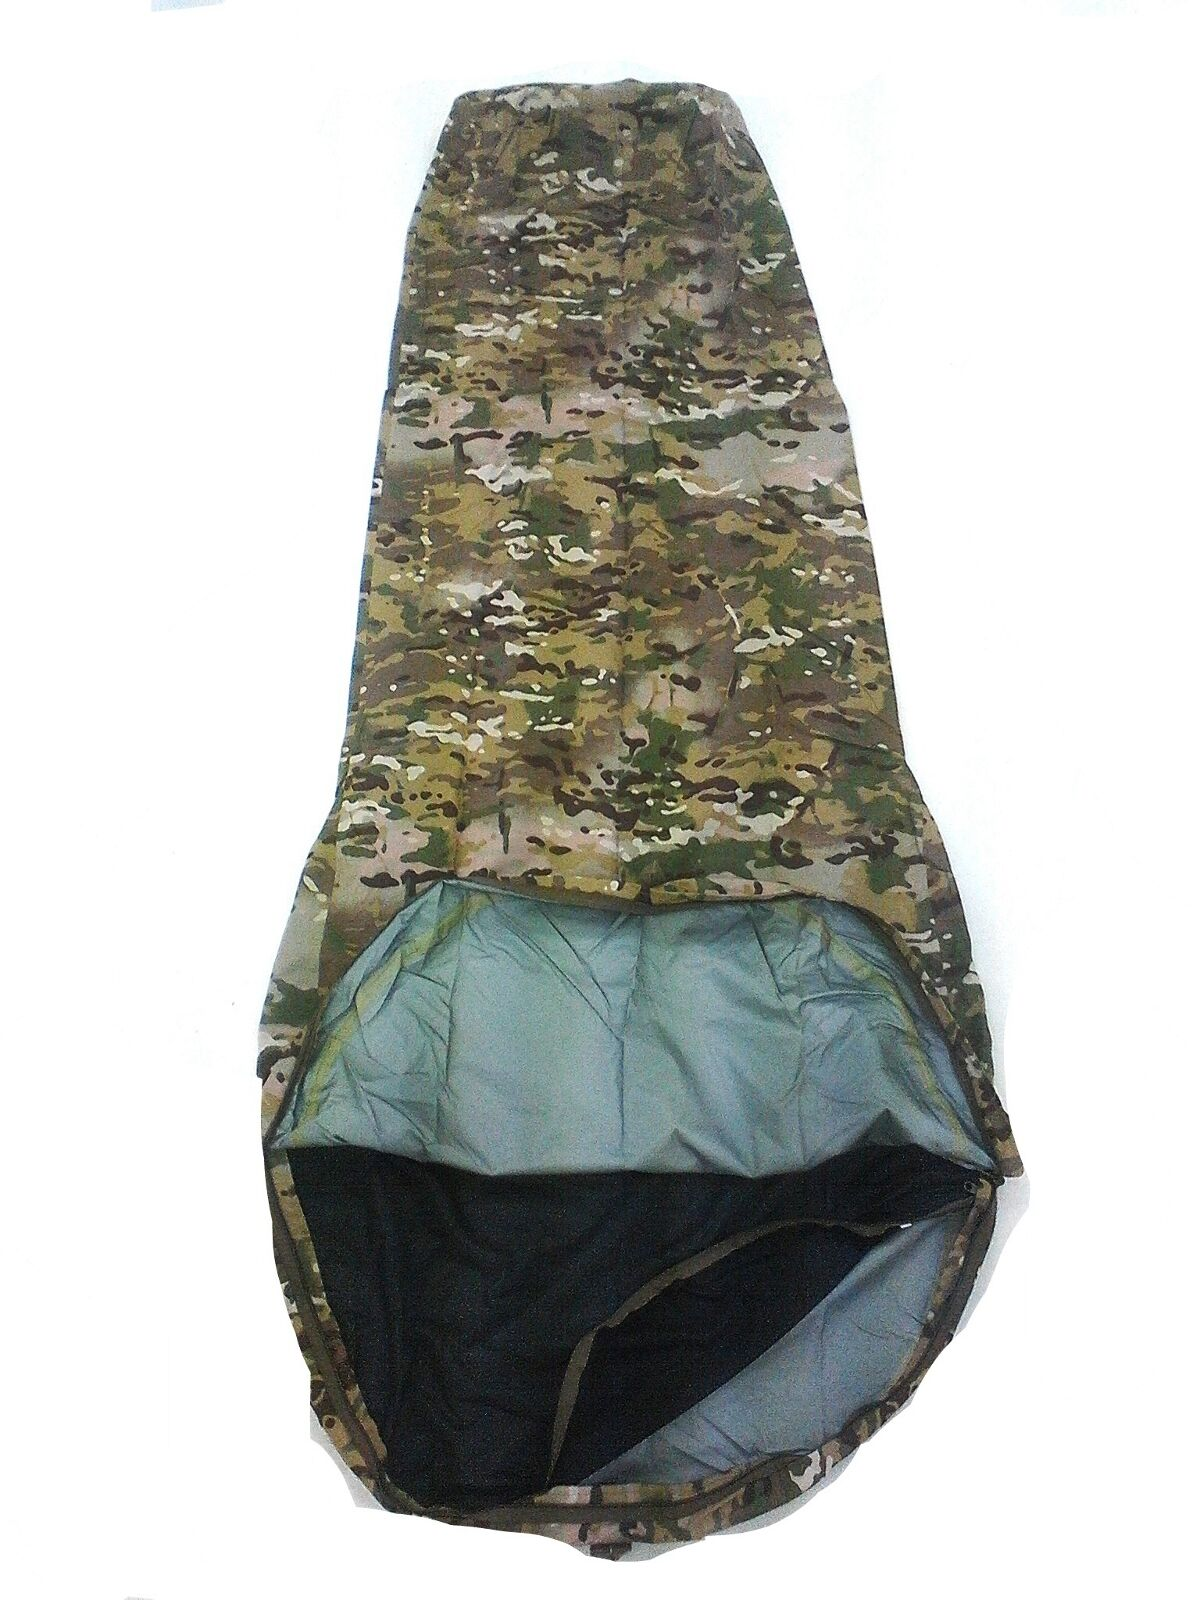 BIVVY BAG MULTICAM LARGE AUSTRALIAN MILITARY SPEC 3 LAYER FABRIC 230X105X80CM